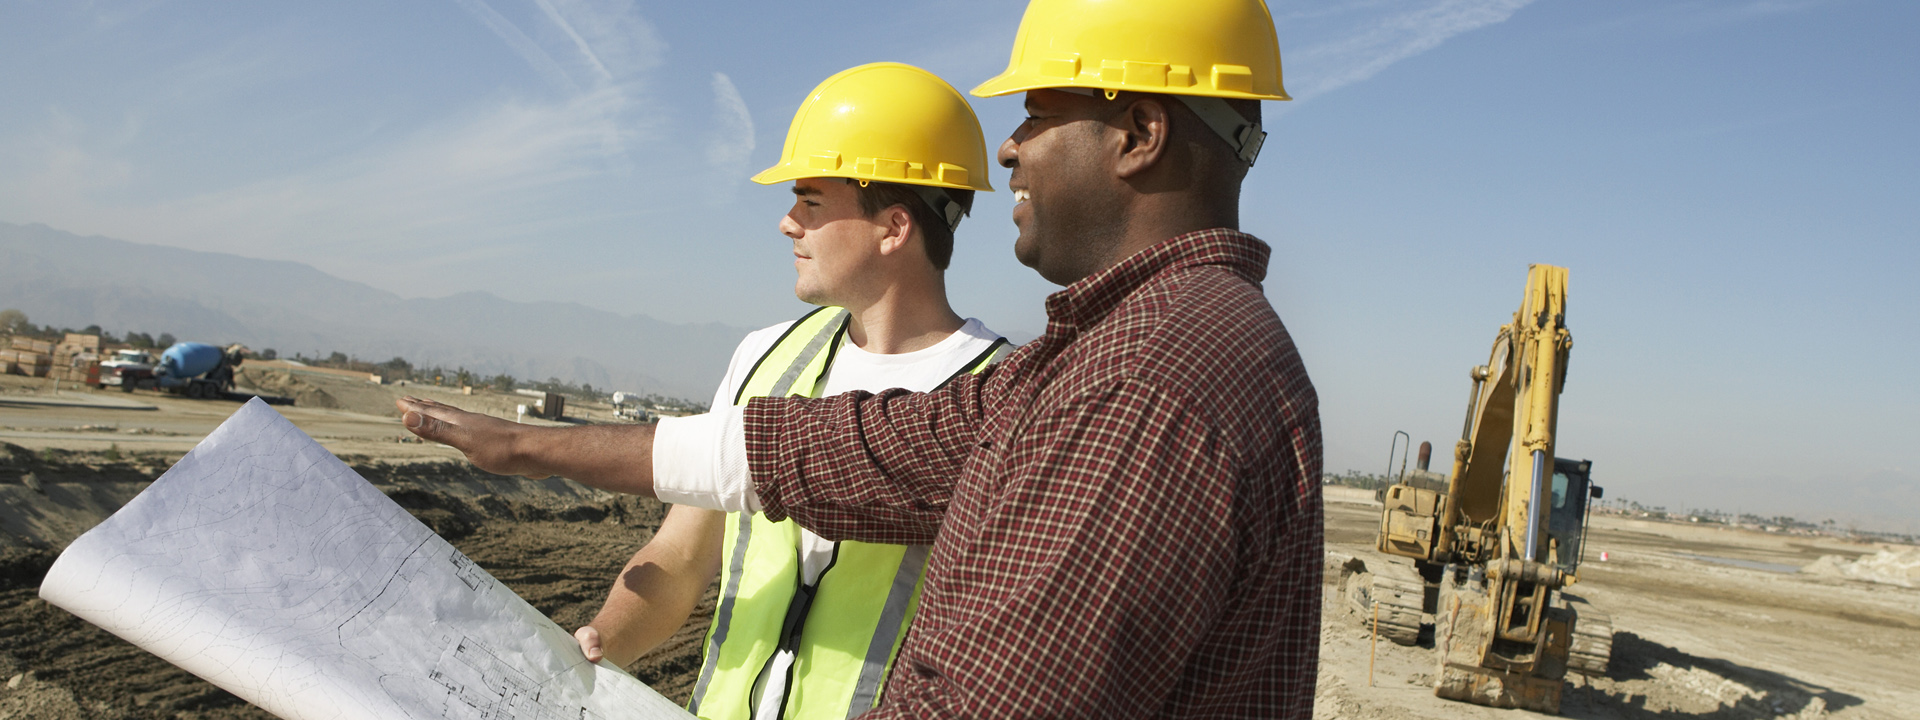 Architectural Design and Construction Technology